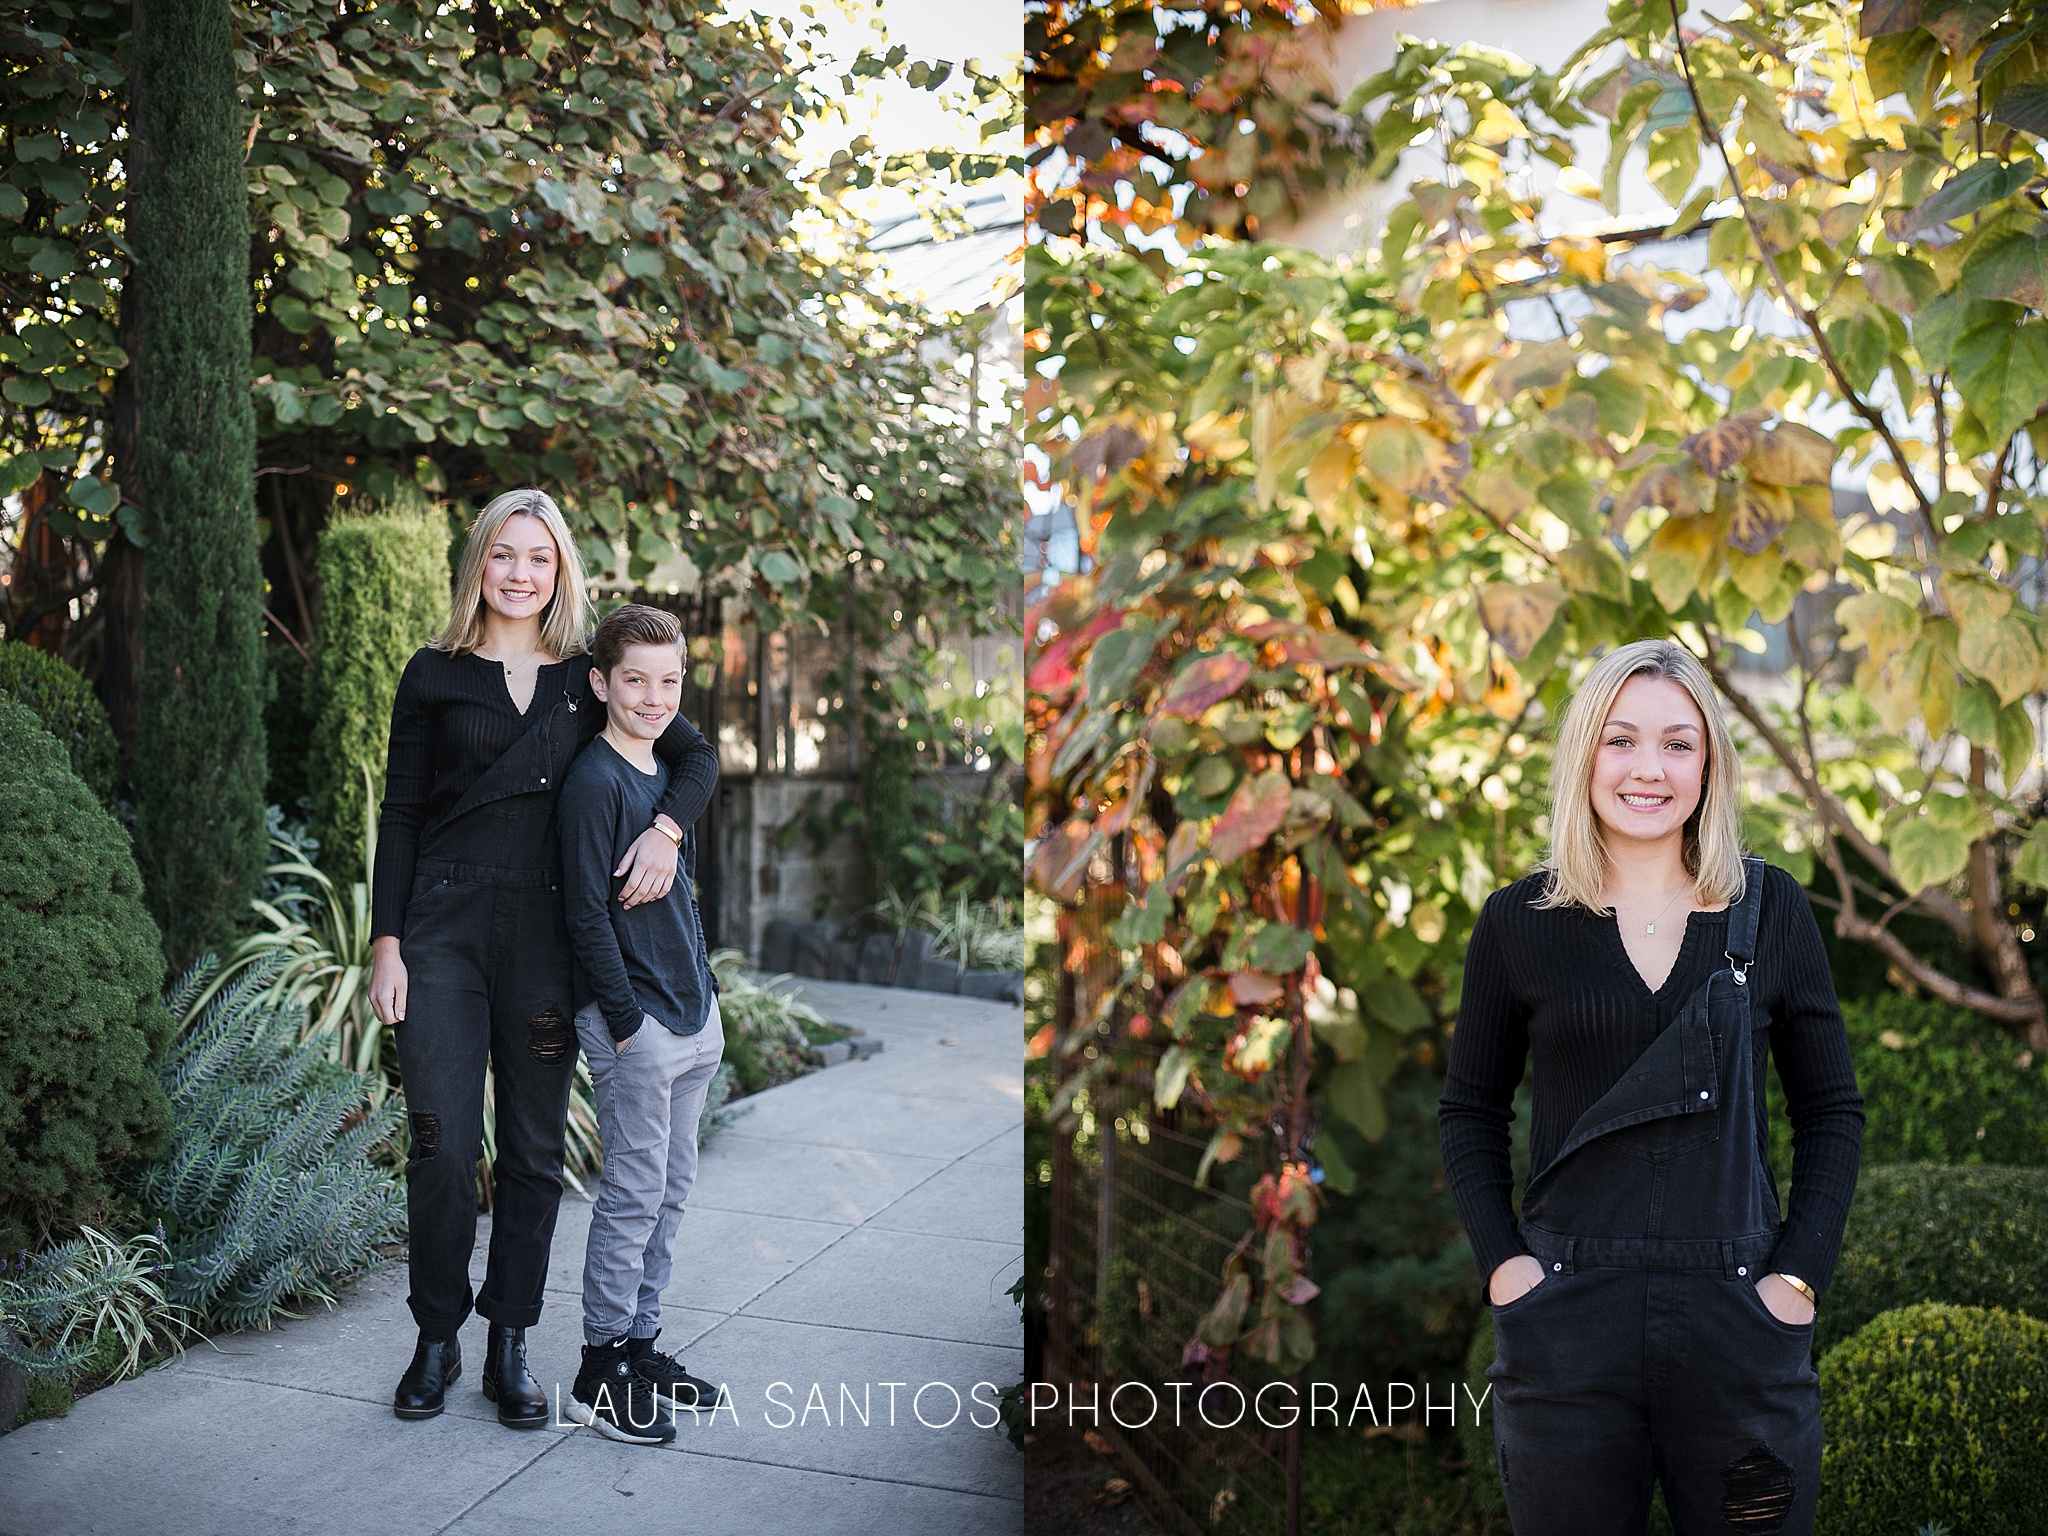 Laura Santos Photography Portland Oregon Family Photographer_0764.jpg